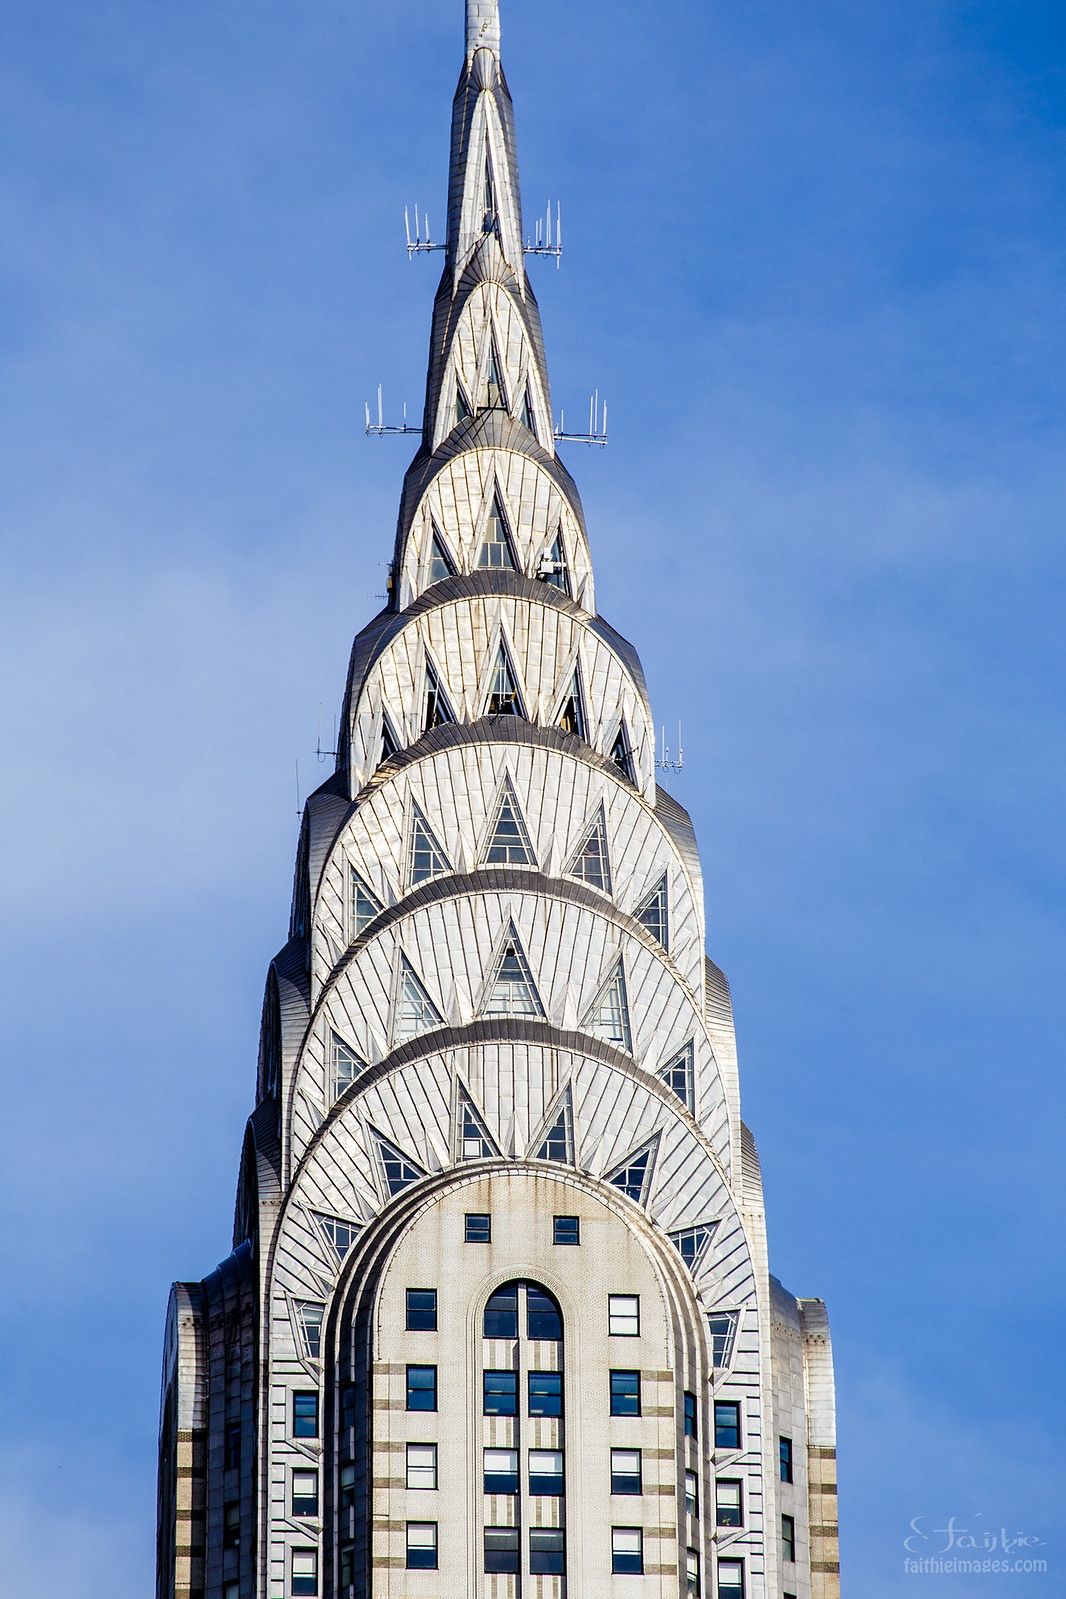 Close-up detail of the Chrysler Building